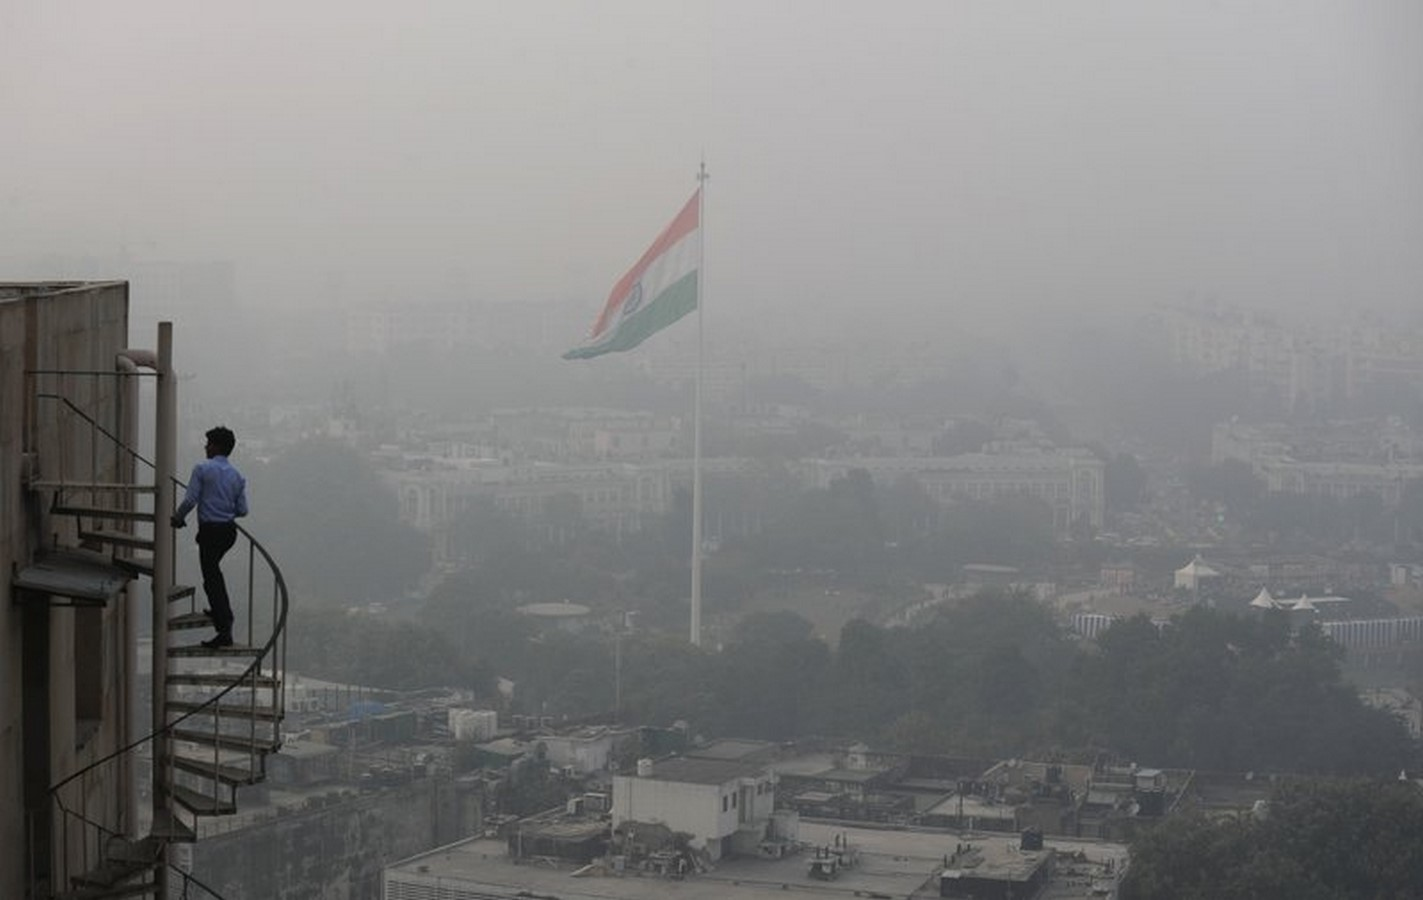 Architecture and the Environment – New Delhi's Pollution Crisis and an Architect's Role - Sheet2